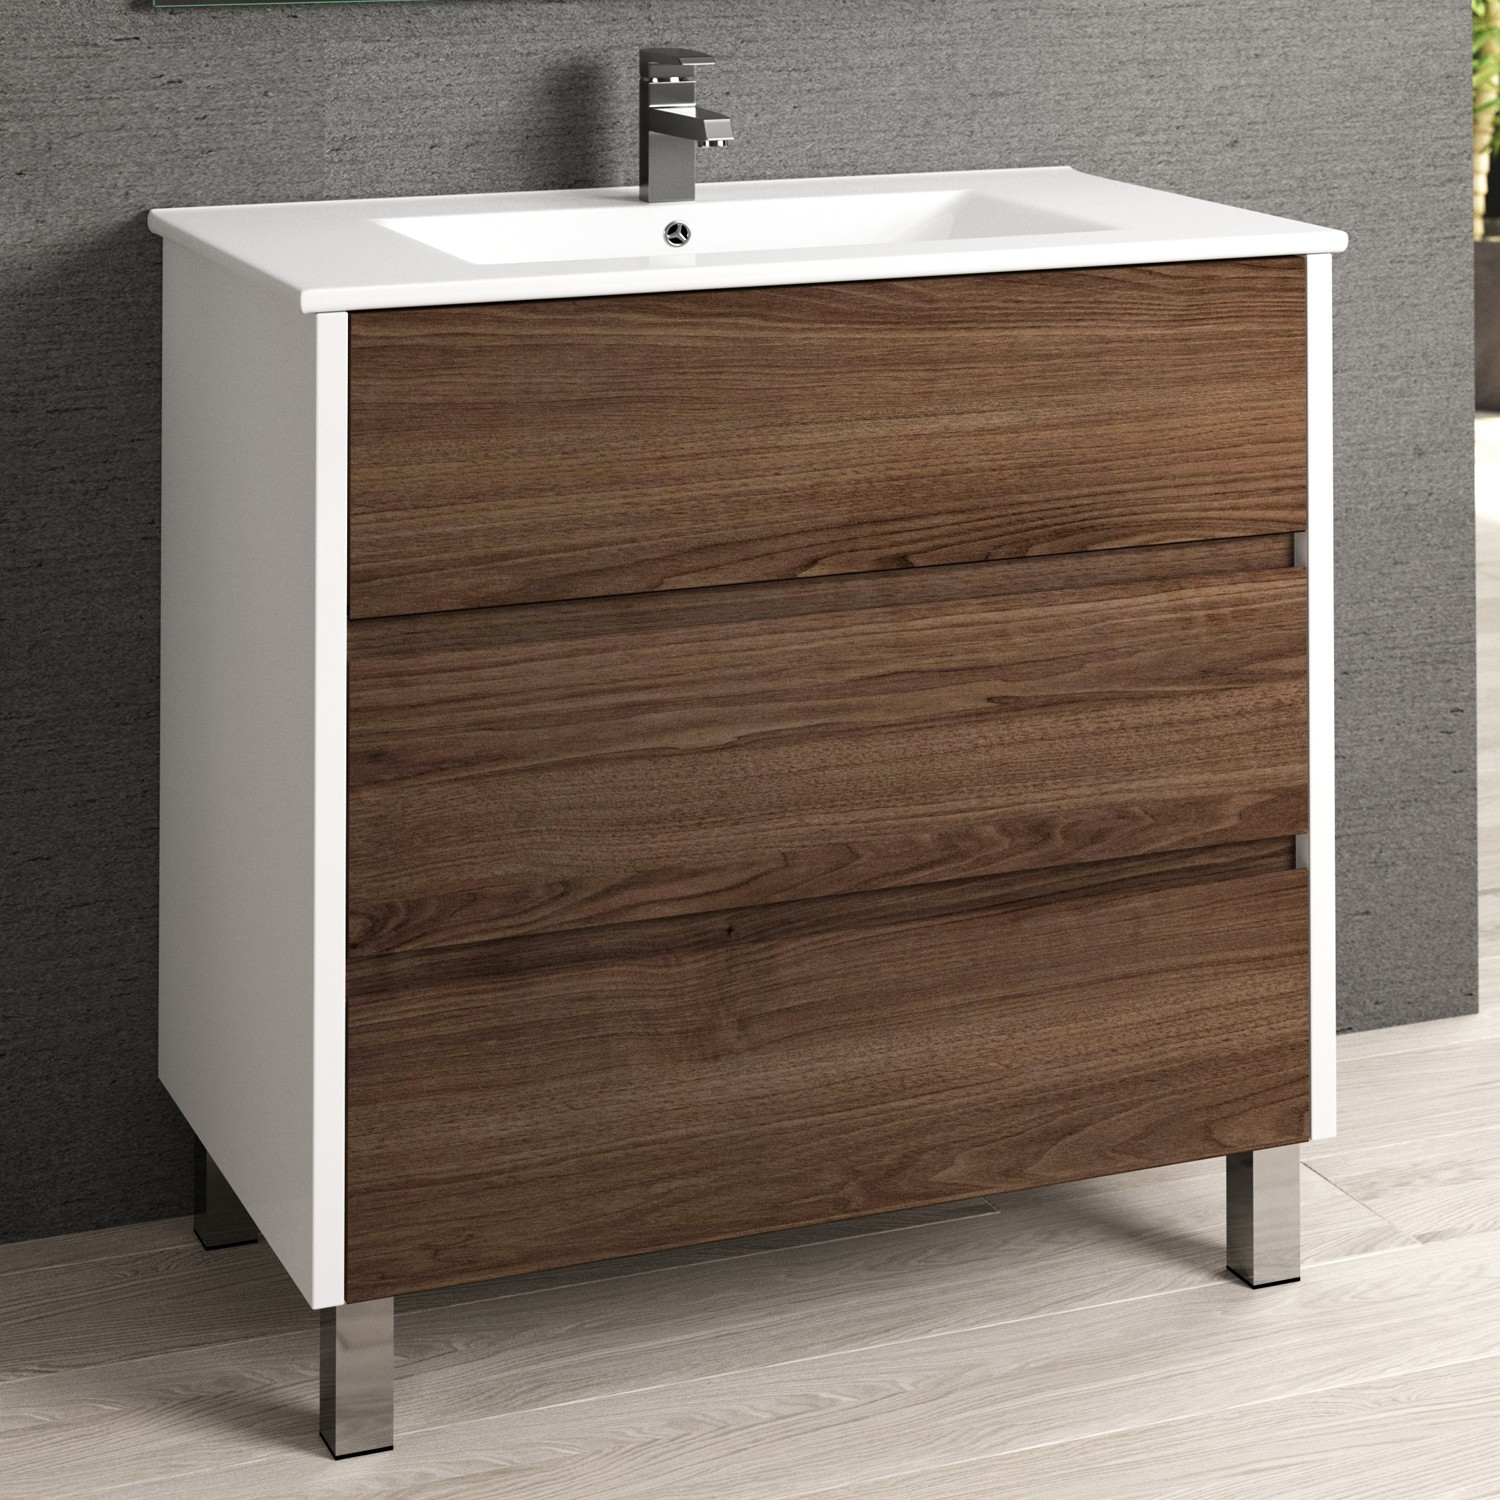 Eviva Majesty 32 Bathroom Vanity With White Integrated Sink In Dark Walnut Finish Decors Us